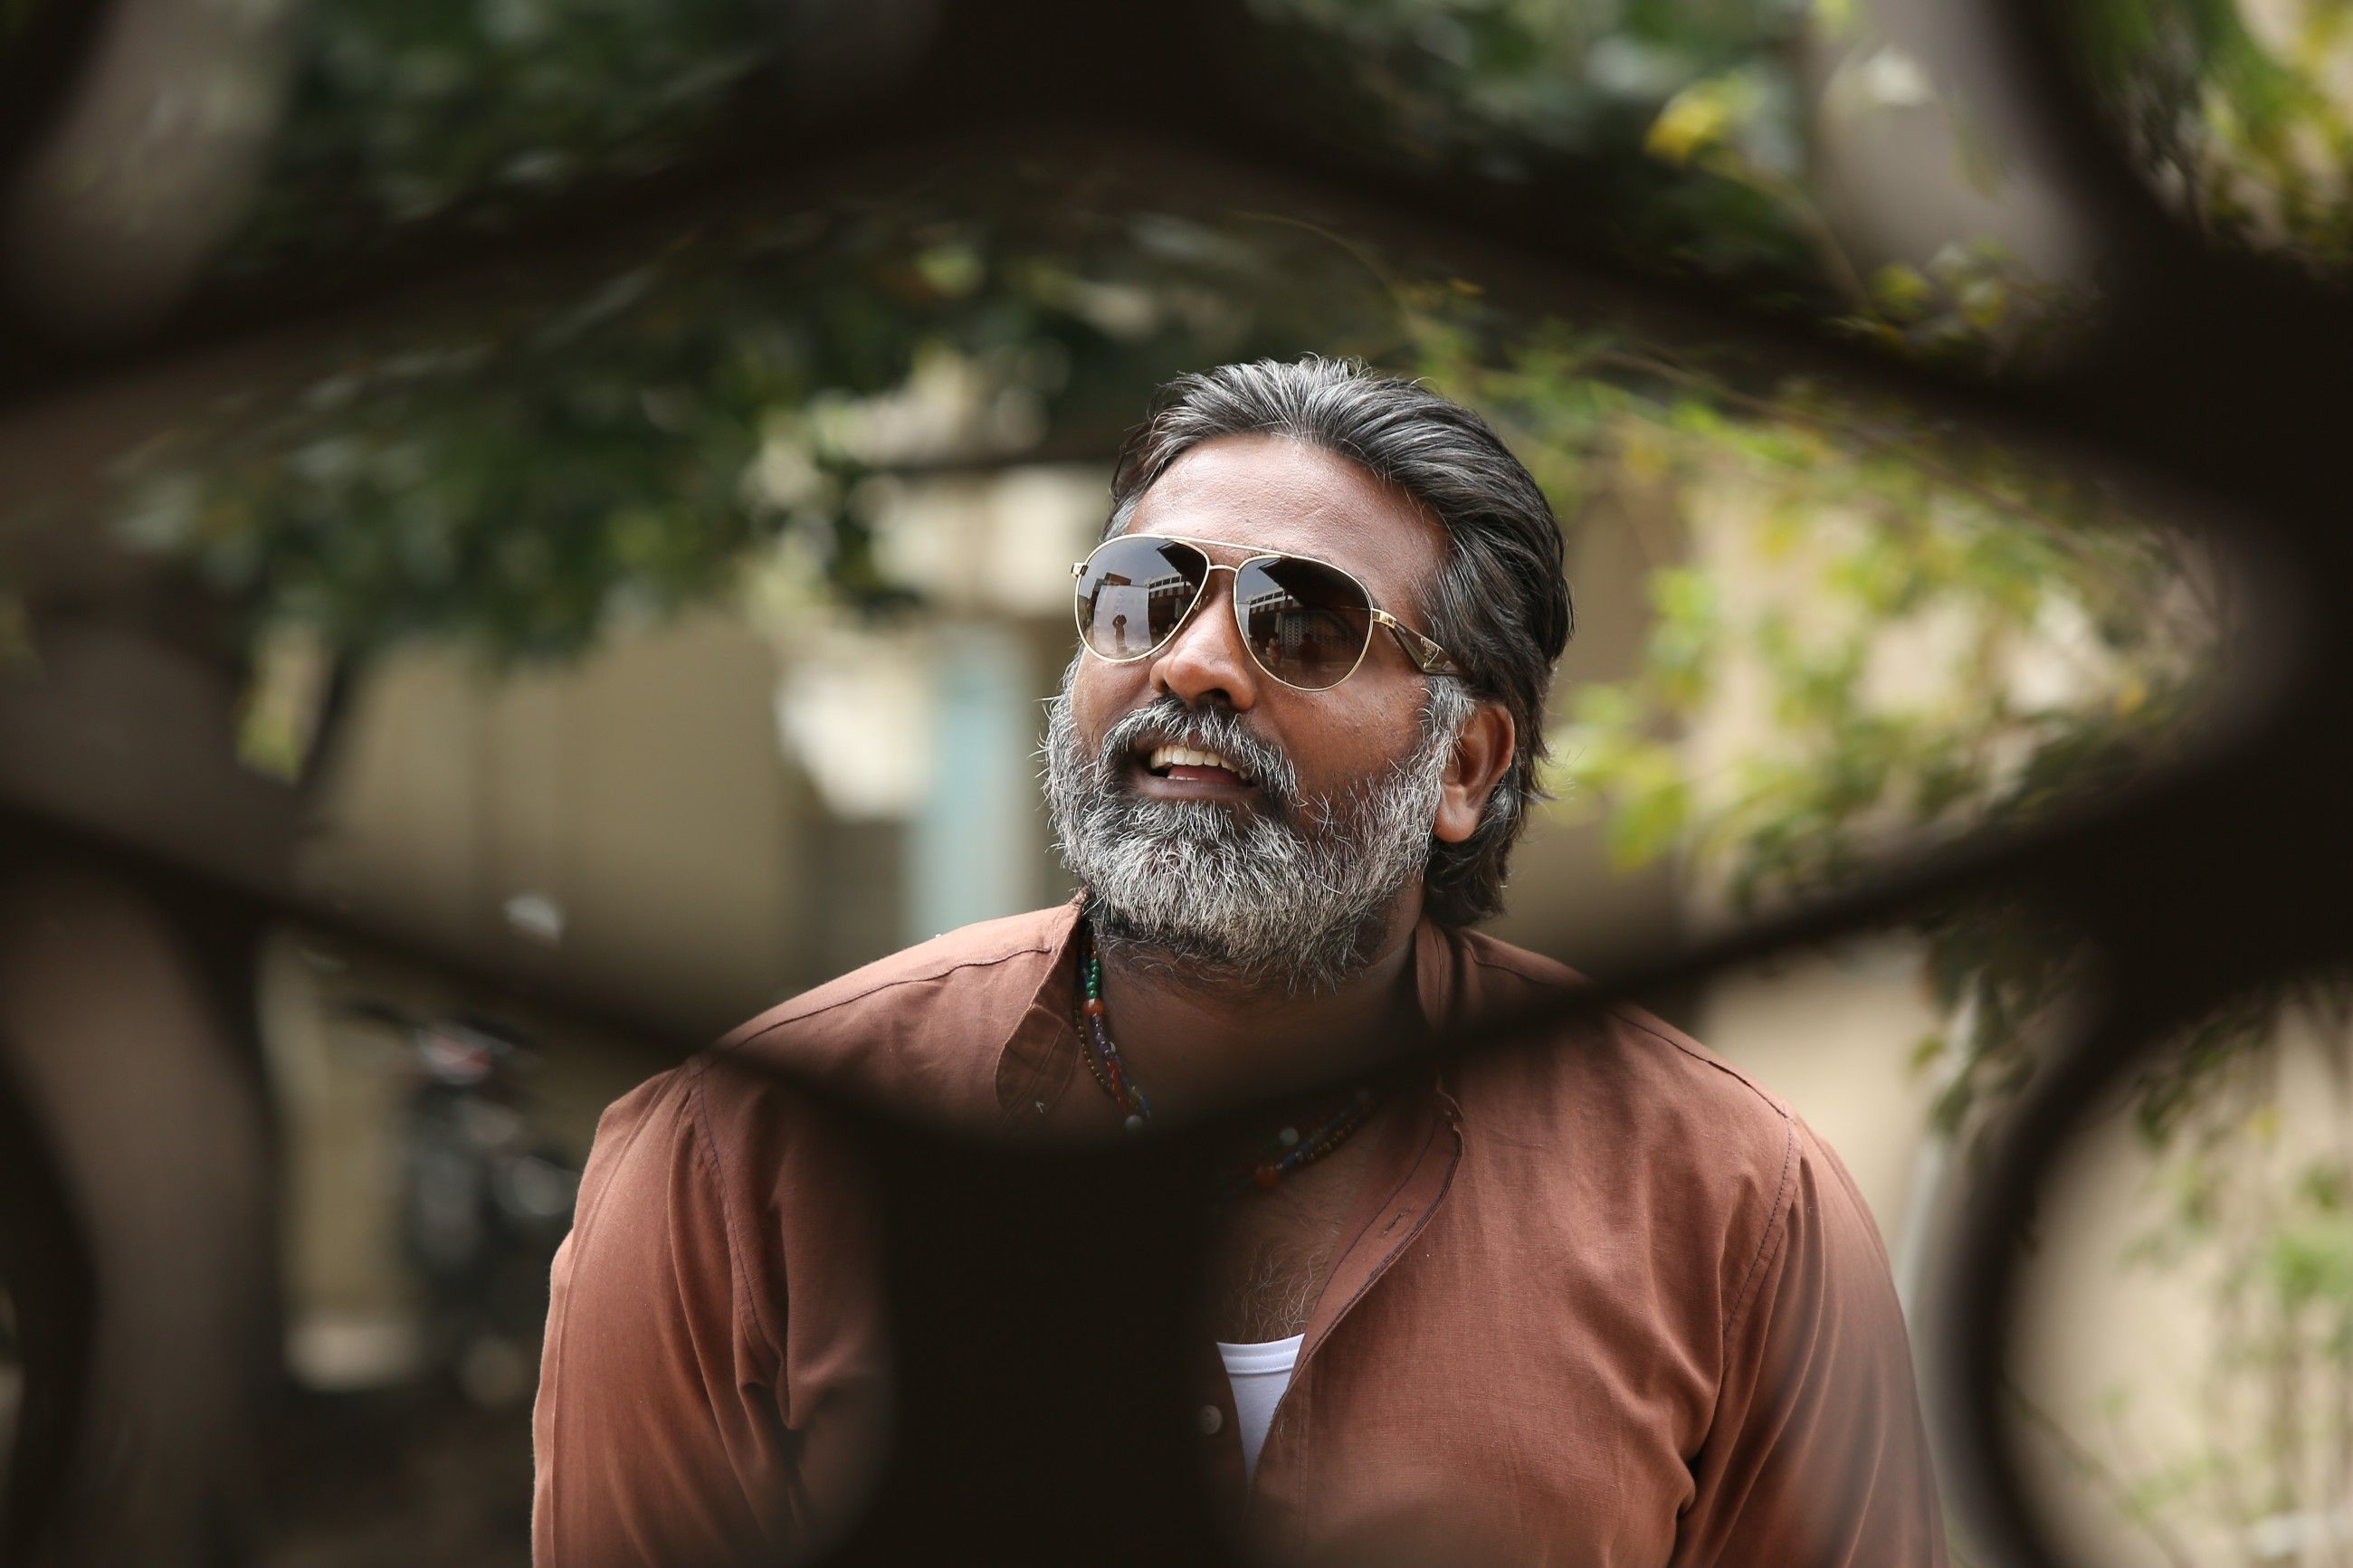 Vijay Sethupathi In Vikram Vedha 3102263 Hd Wallpaper Backgrounds Download We hope you enjoy our growing collection of hd images to use as a background or home screen for your smartphone or computer. vijay sethupathi in vikram vedha